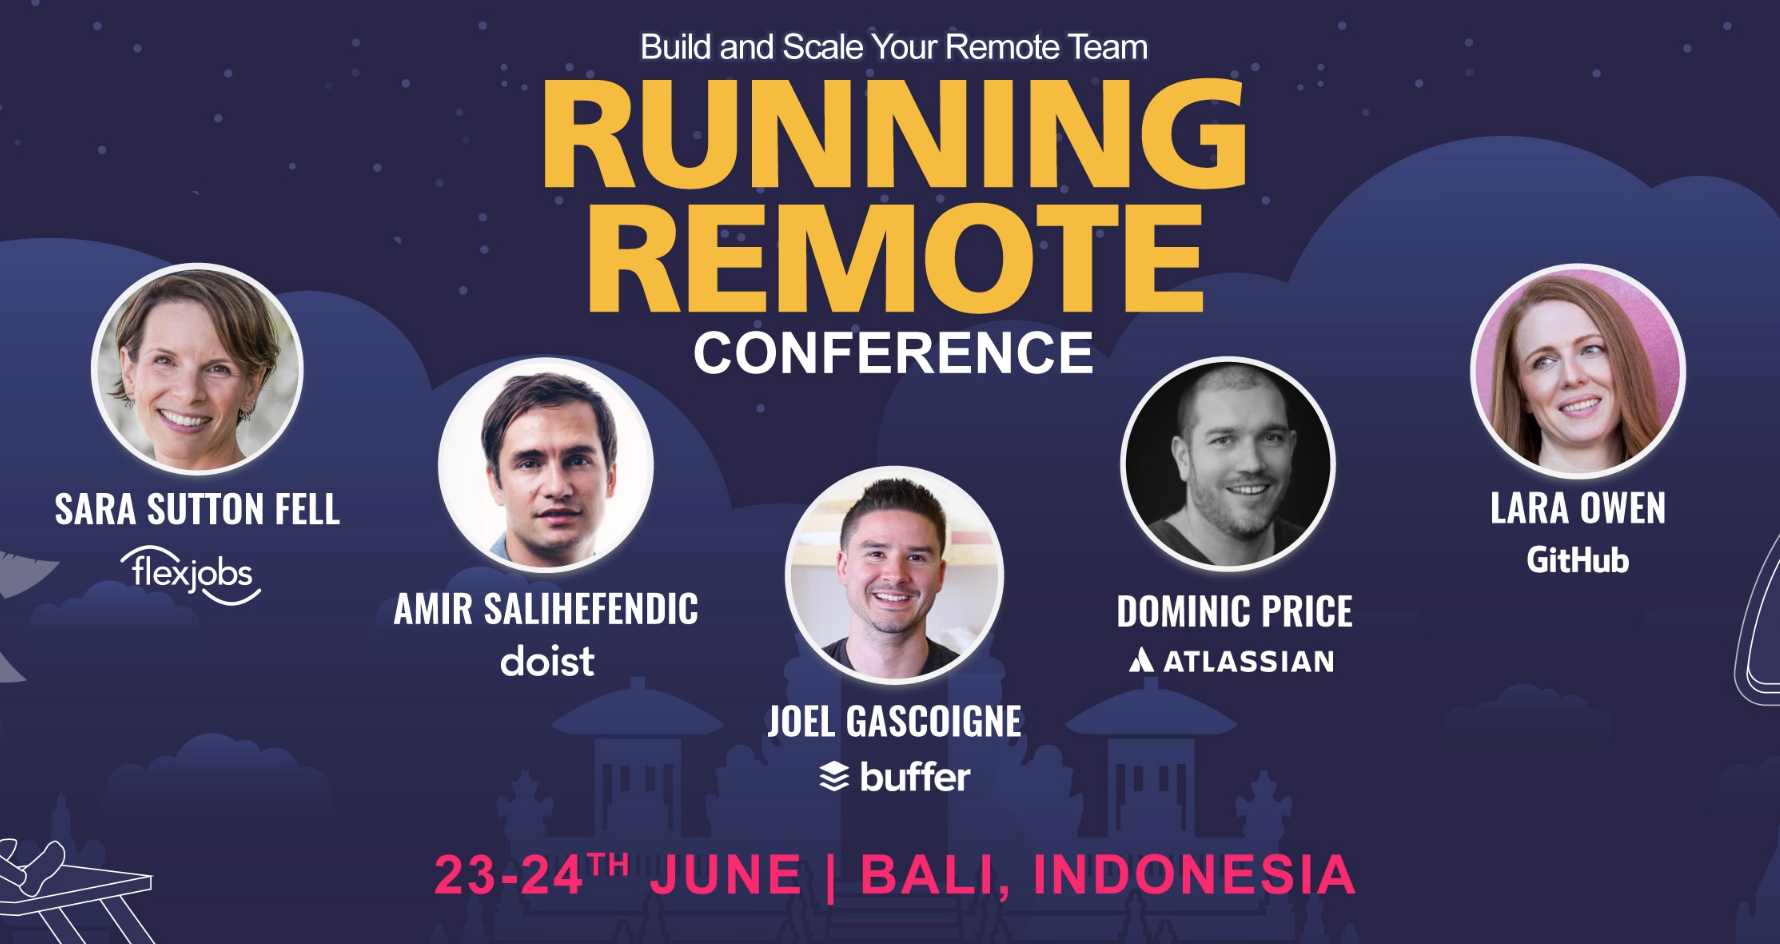 Contest: Win a ticket for Running Remote Bali 2018 with Remoters